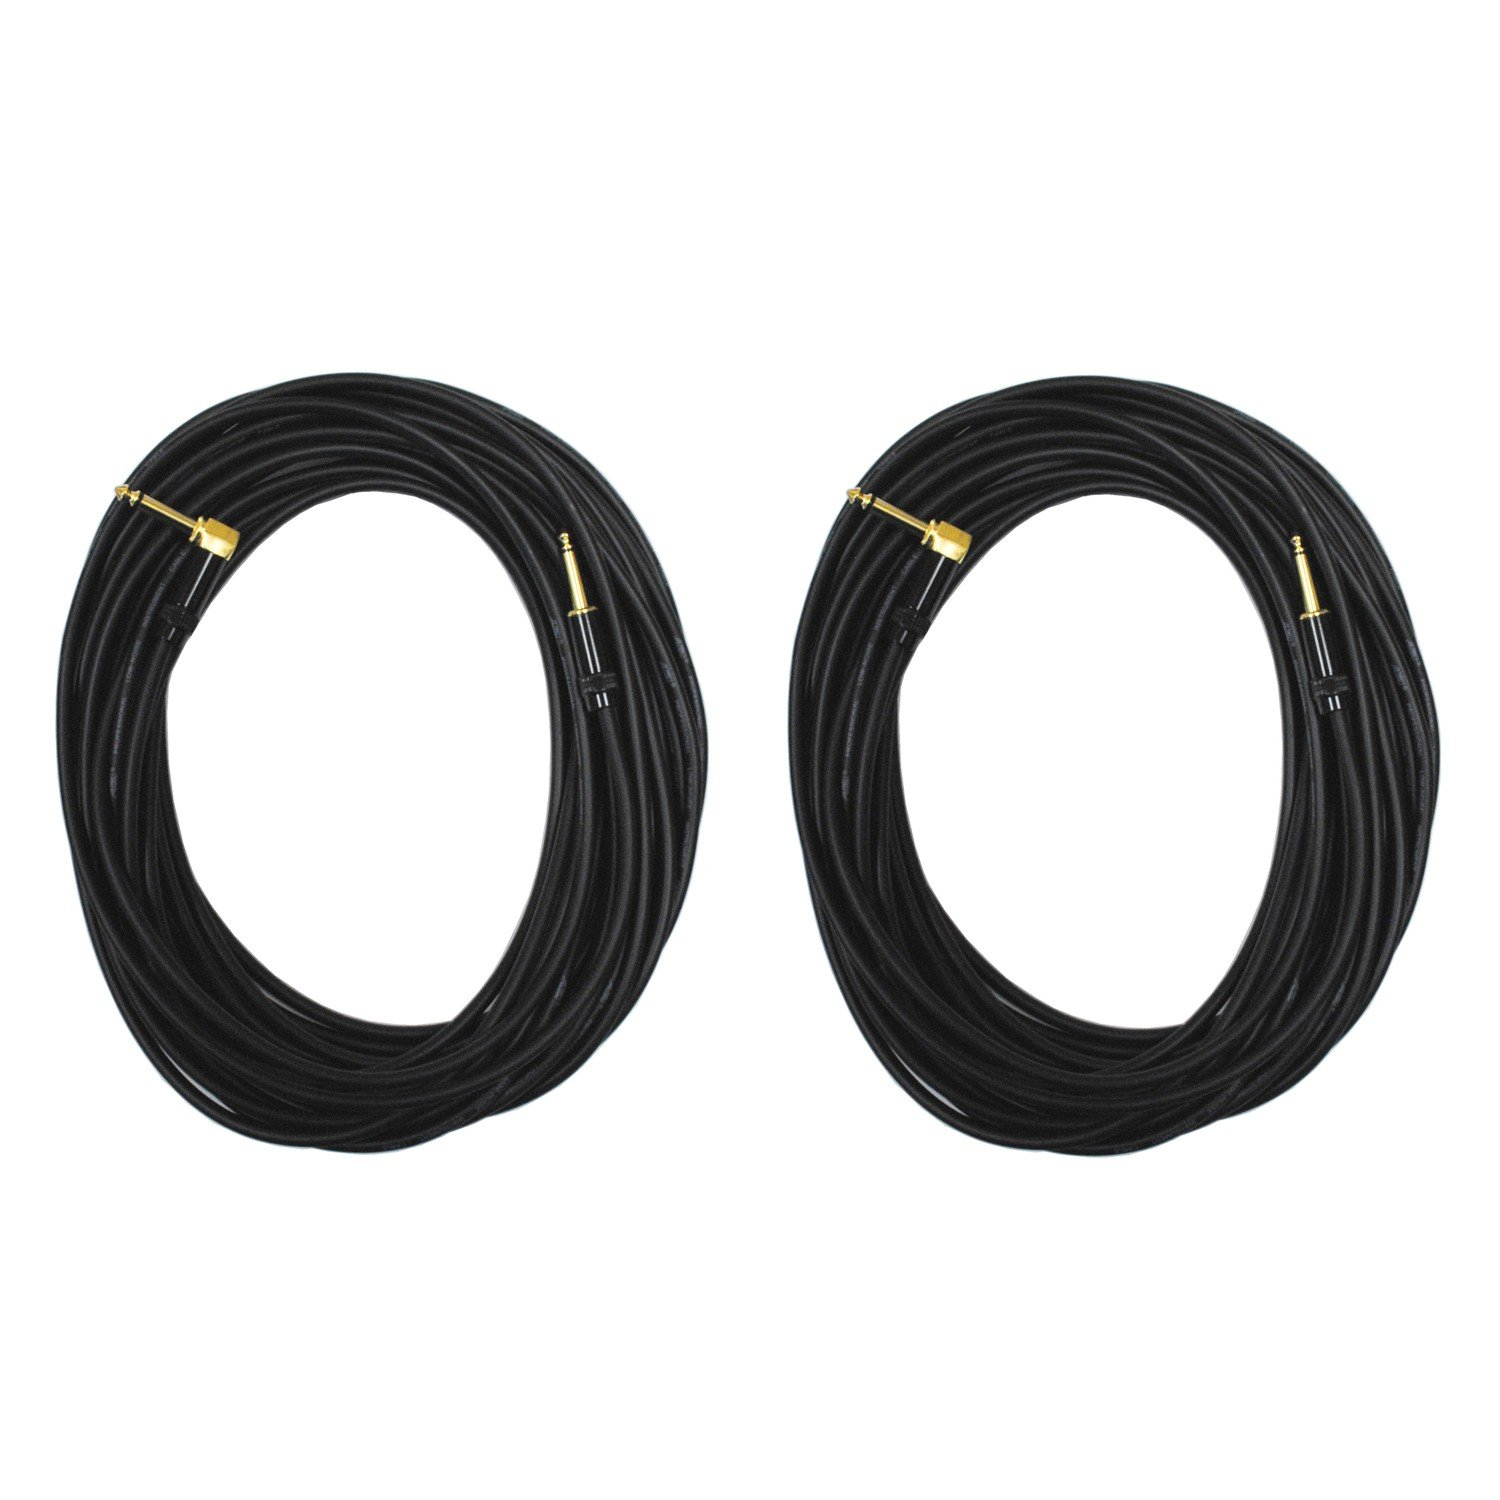 Audio 2000s E28150P2 1/4'' TS Right Angle to 1/4'' TS 50 Feet PatchCable (2 Pack)